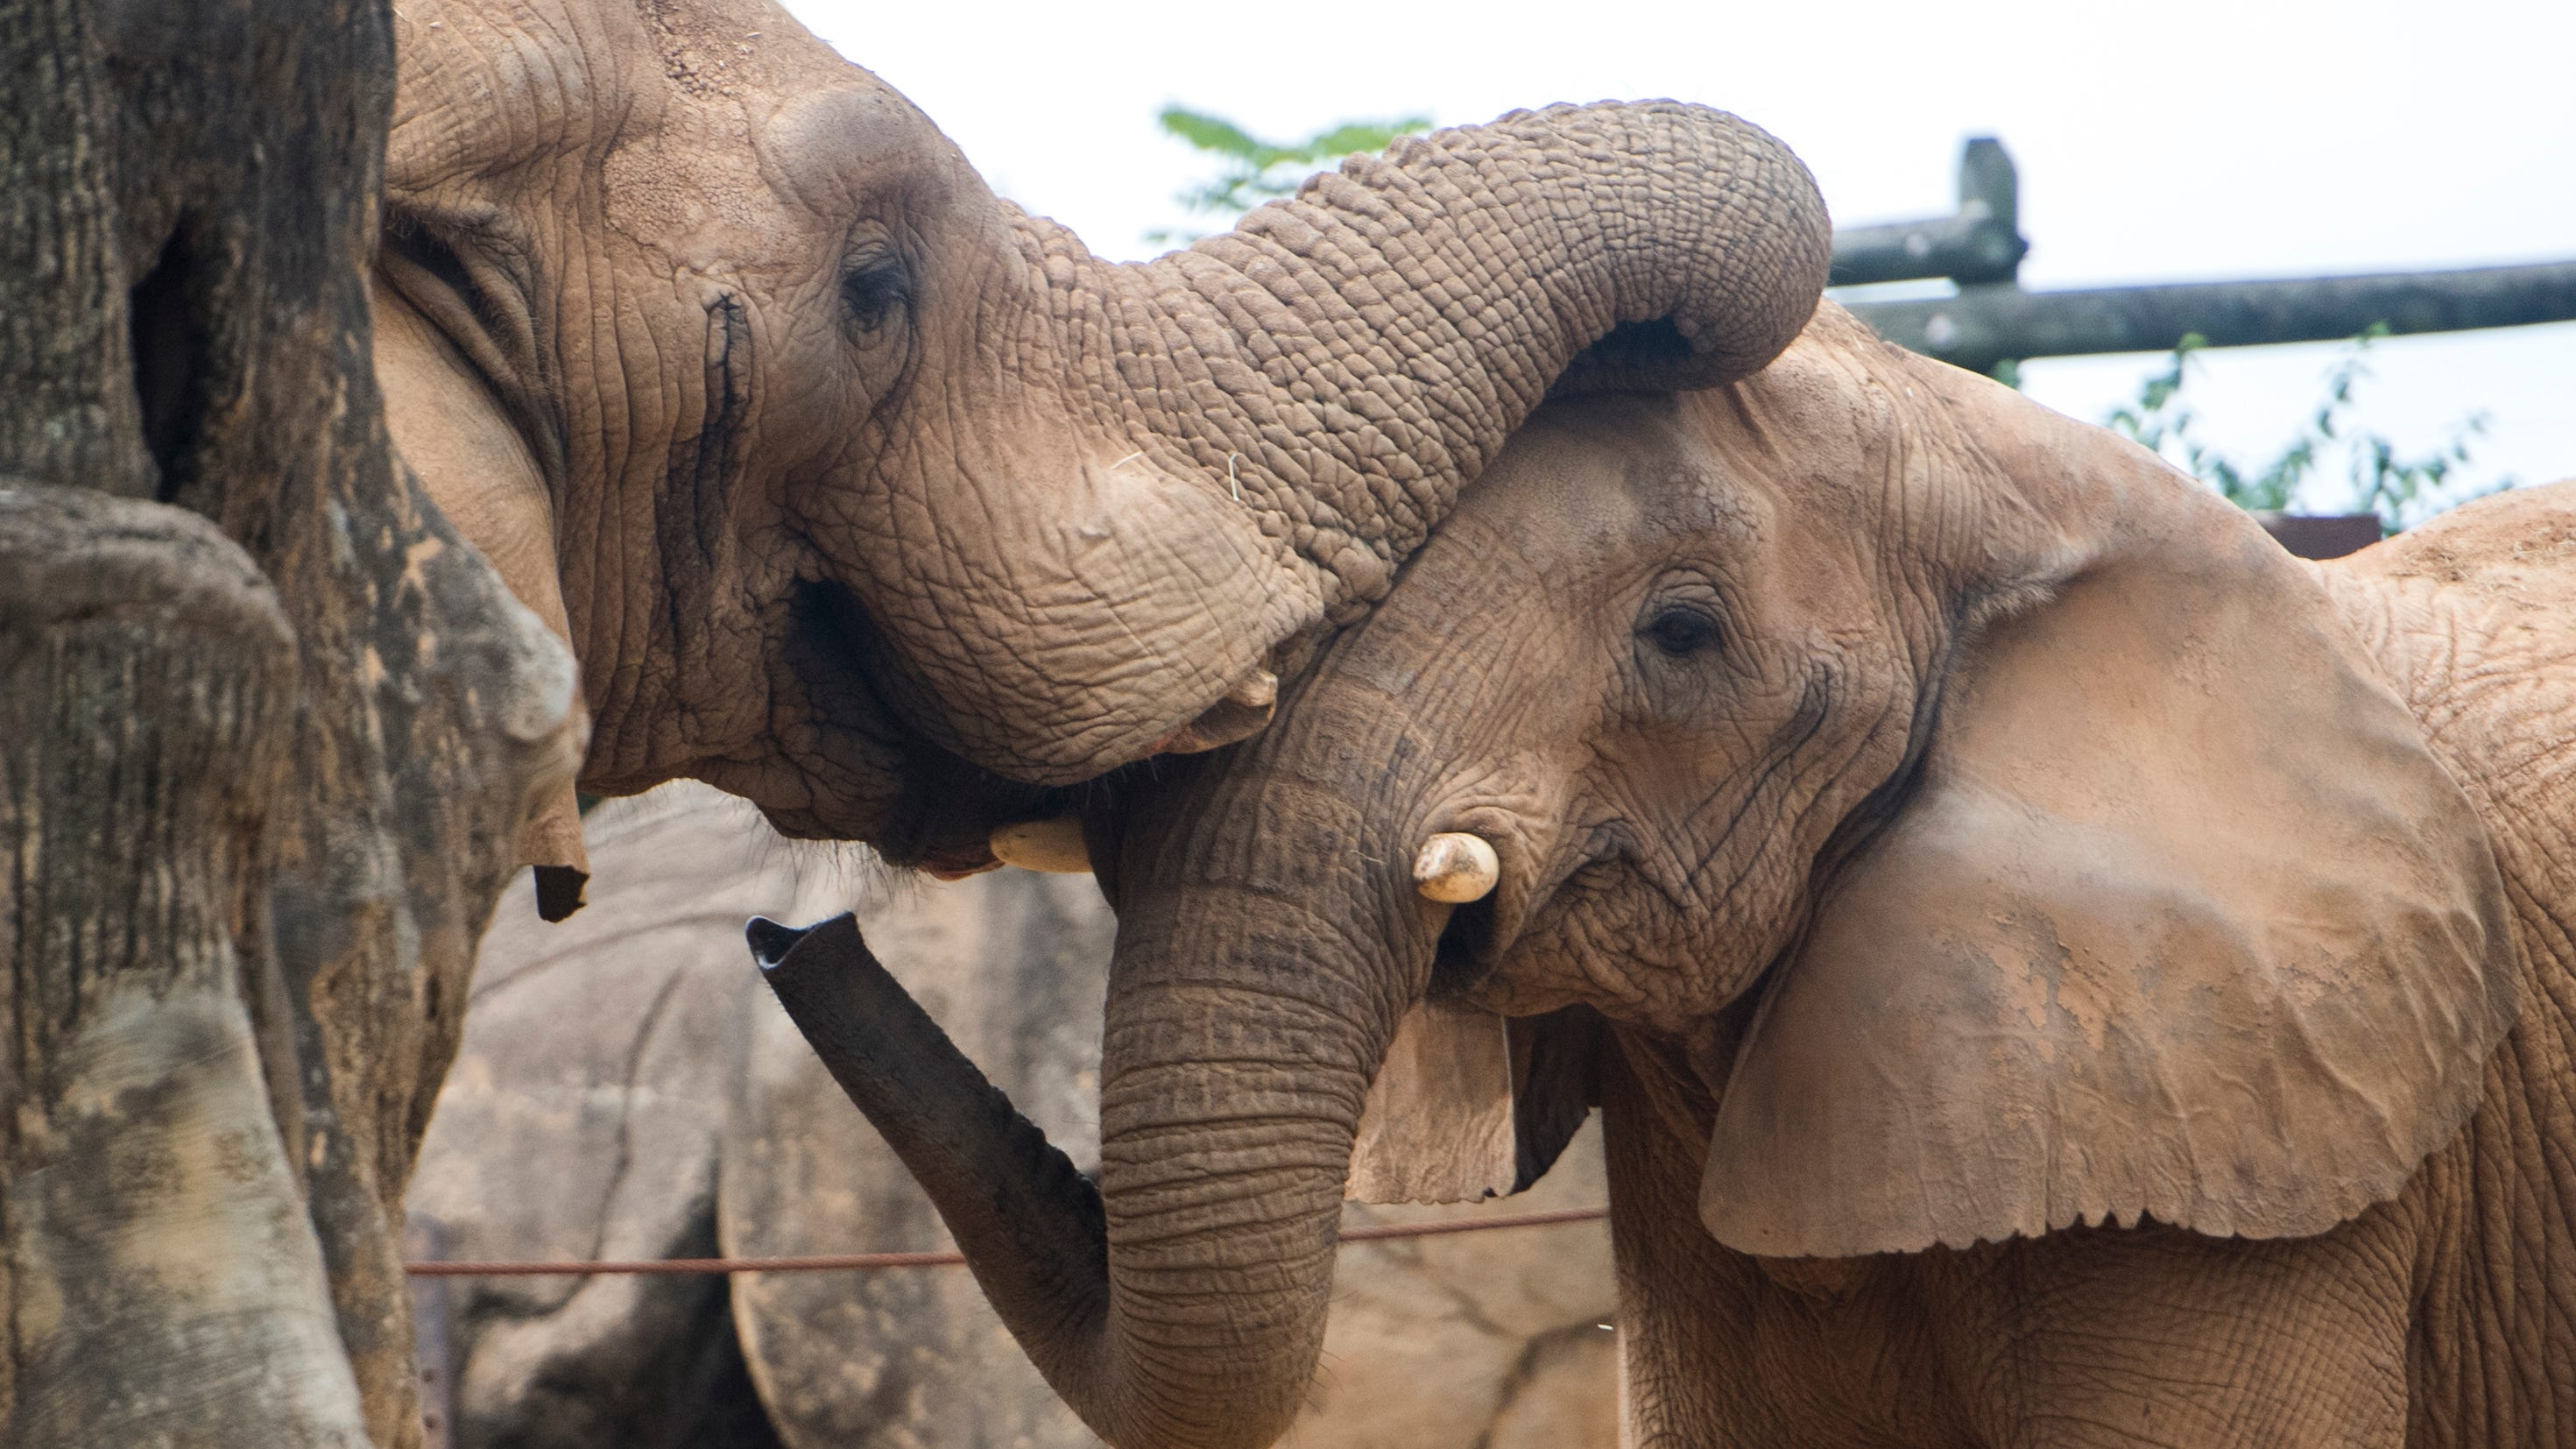 Zoo Knoxville elephant Tonka holds key to zoo's pachyderm future but can he produce?